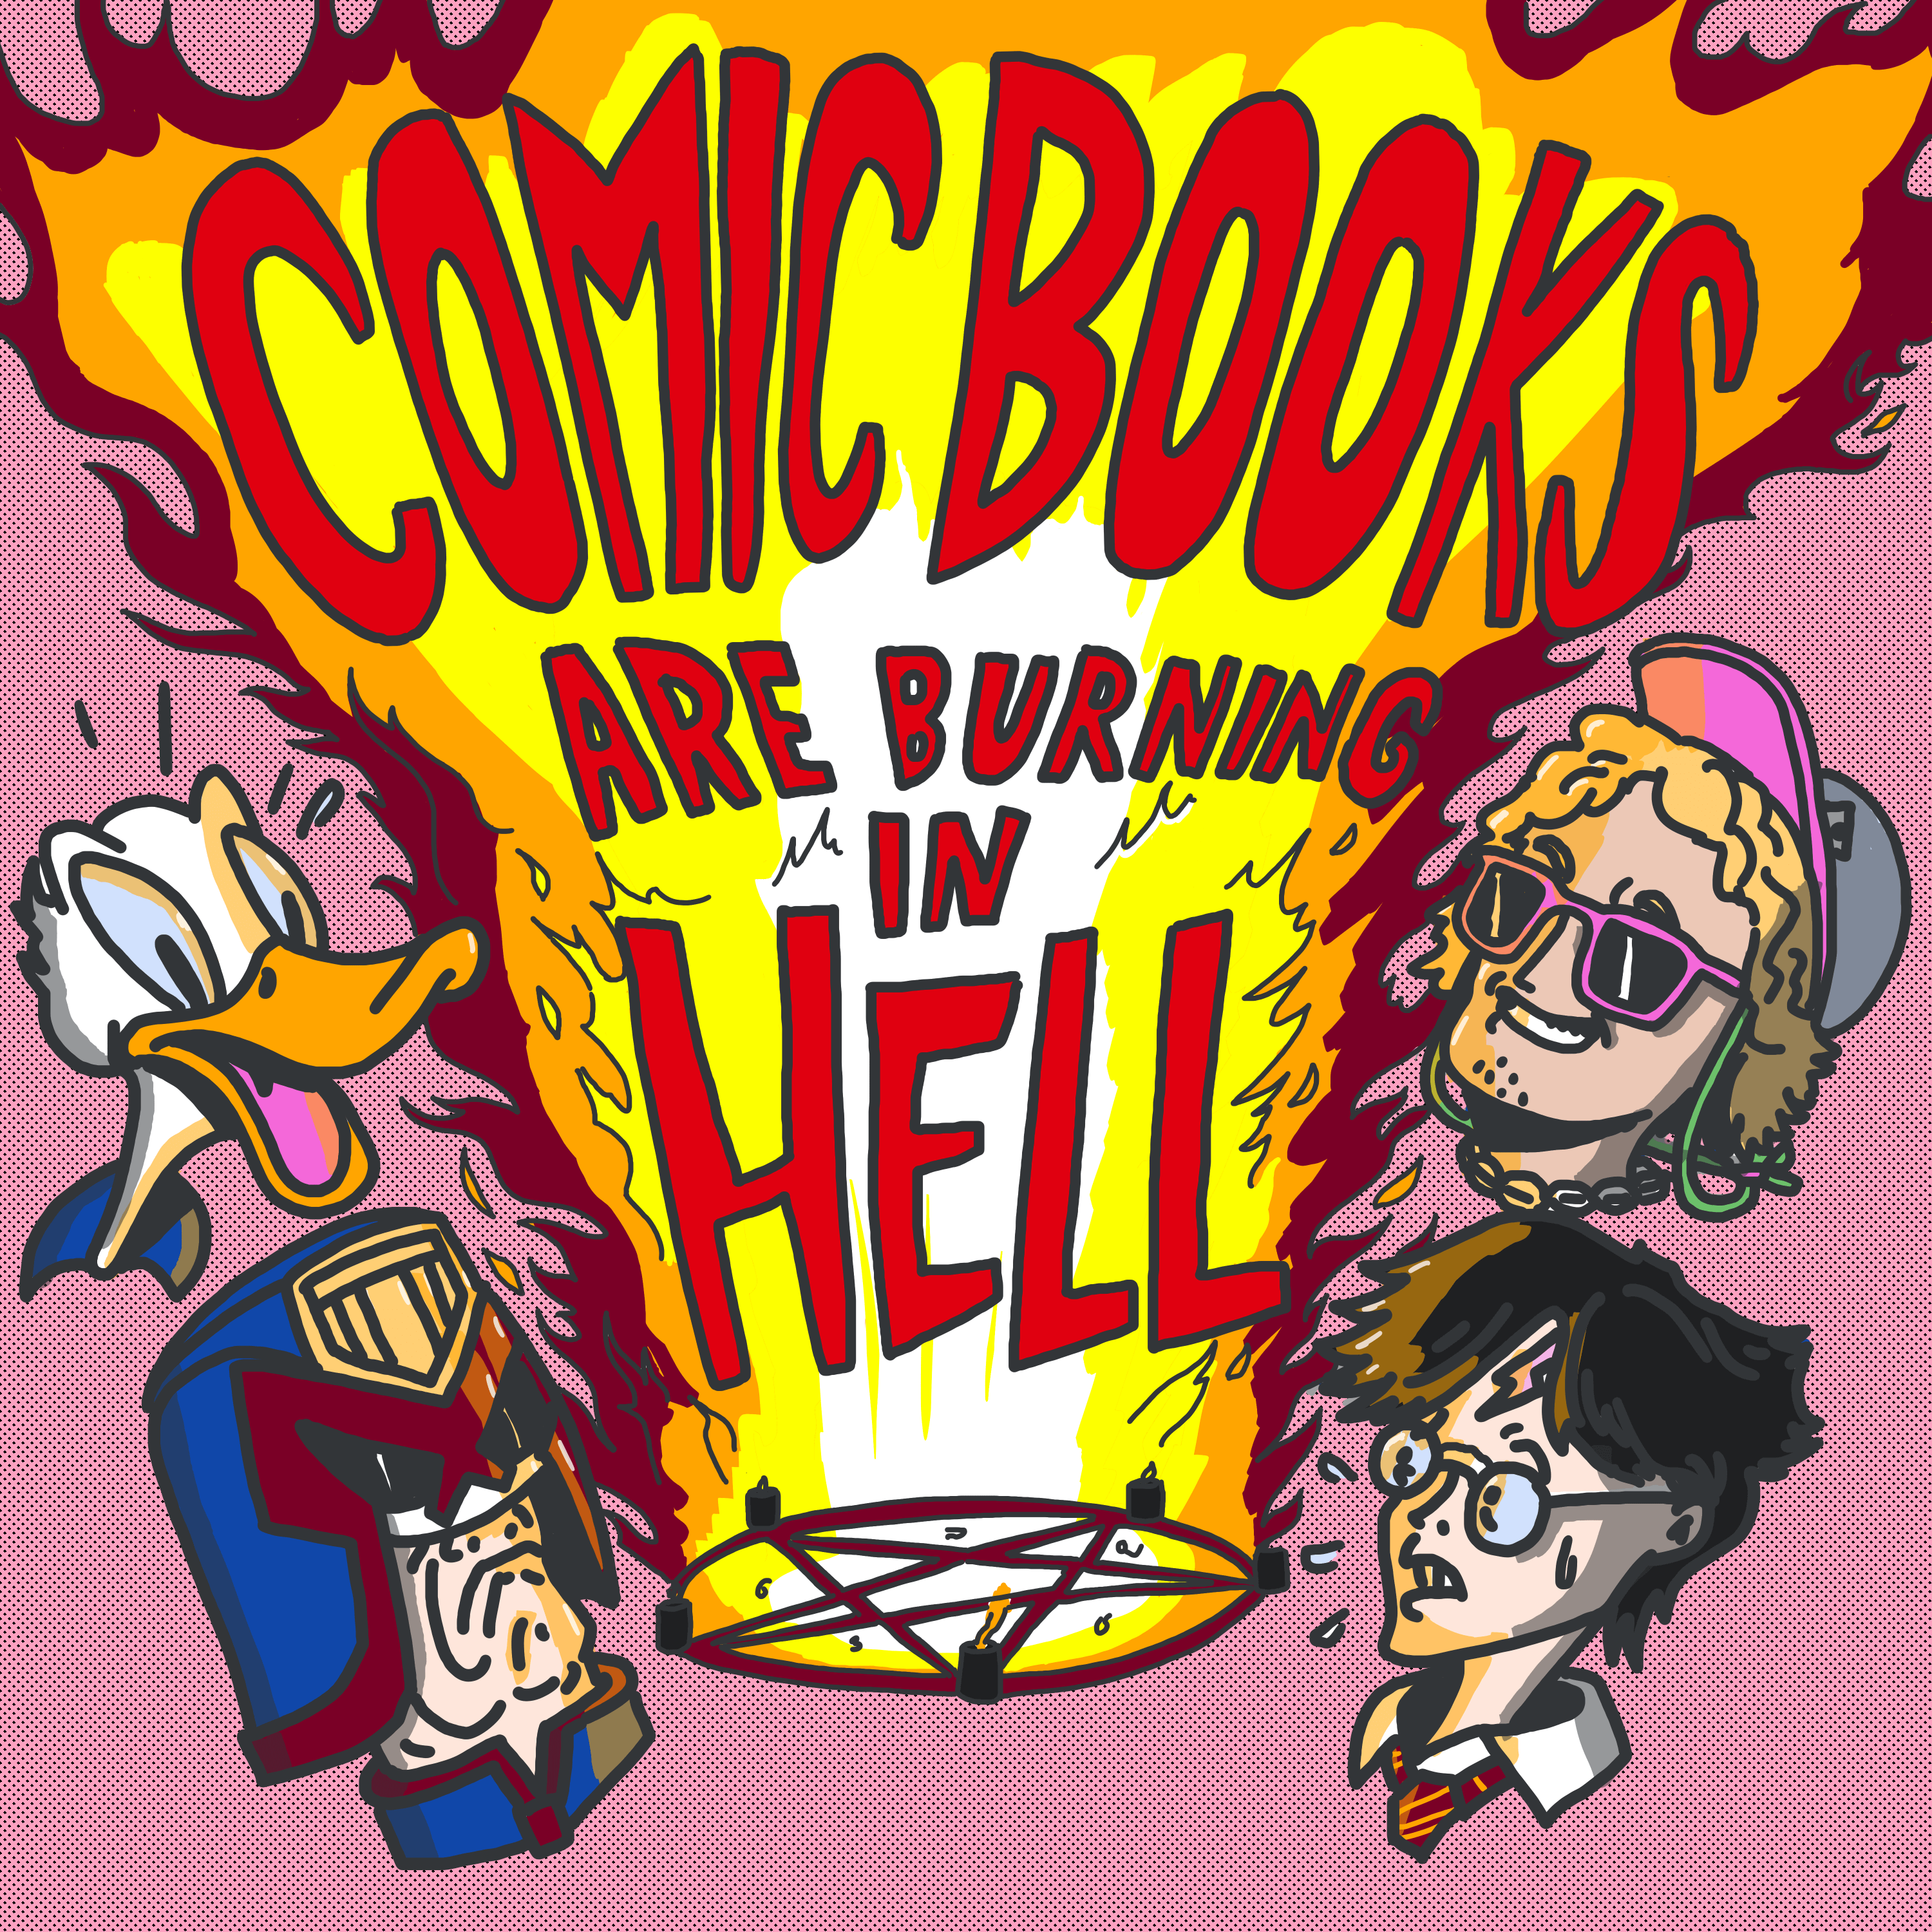 Comic Books Are Burning In Hell show art